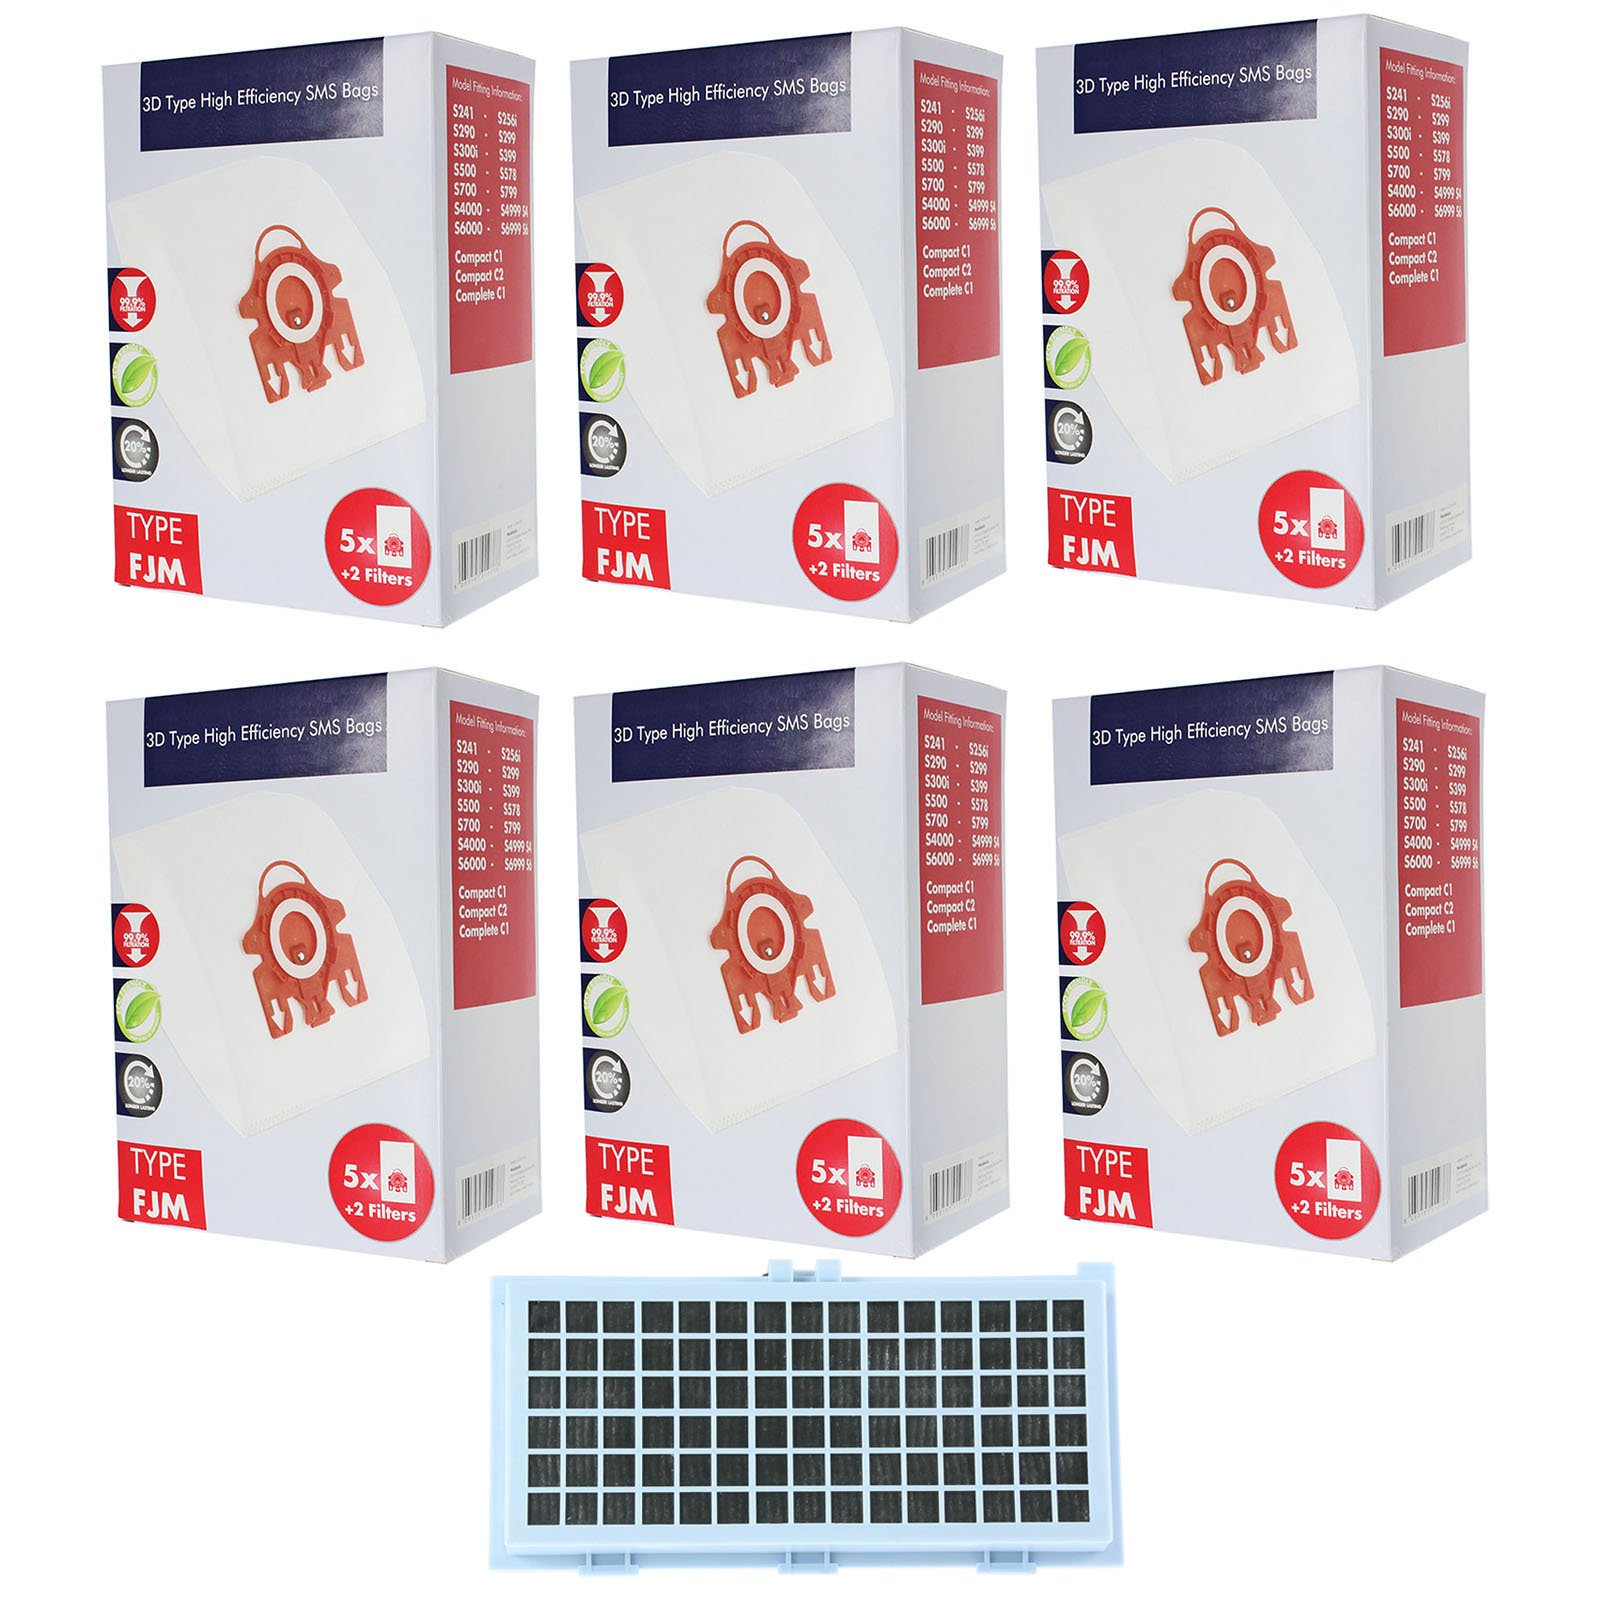 Spares2go 3D FJM Type Hyclean Bags + For Miele TT1800 TT2000 Vacuum Cleaner 30 Bags + Active HEPA Filter + Micro